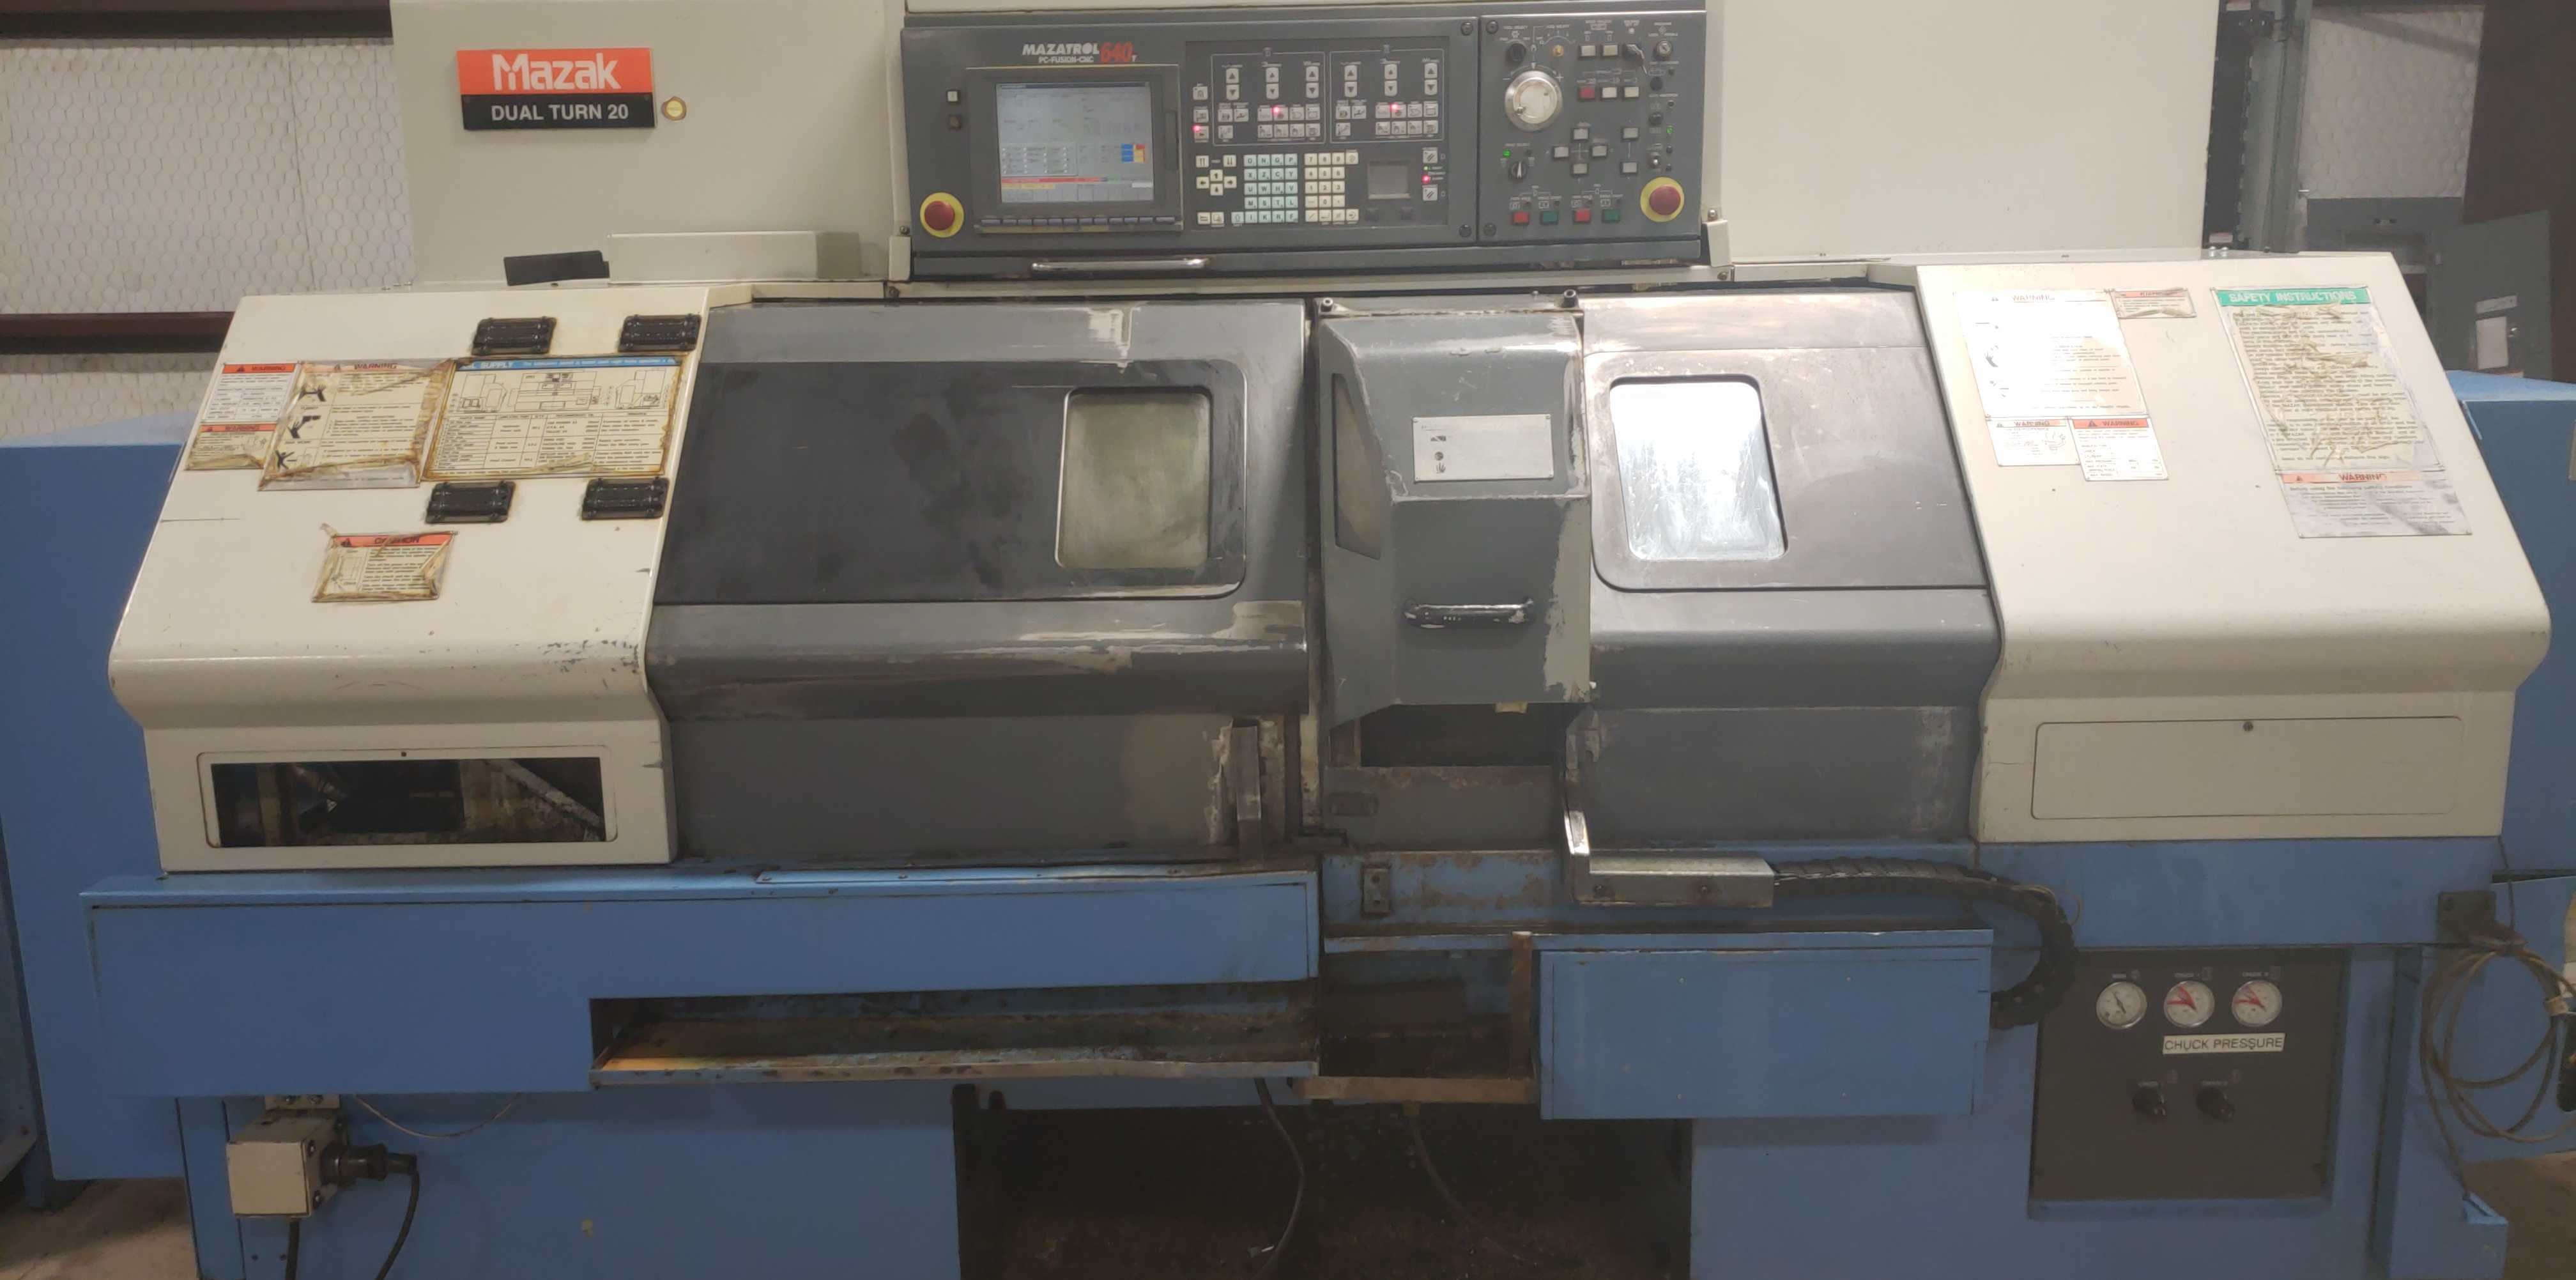 2004 Mazak Dual Turn 20 4 Axis Twin Spindle Twin Turret Opposed CNC Turning Center, rear discharge - Image 4 of 9